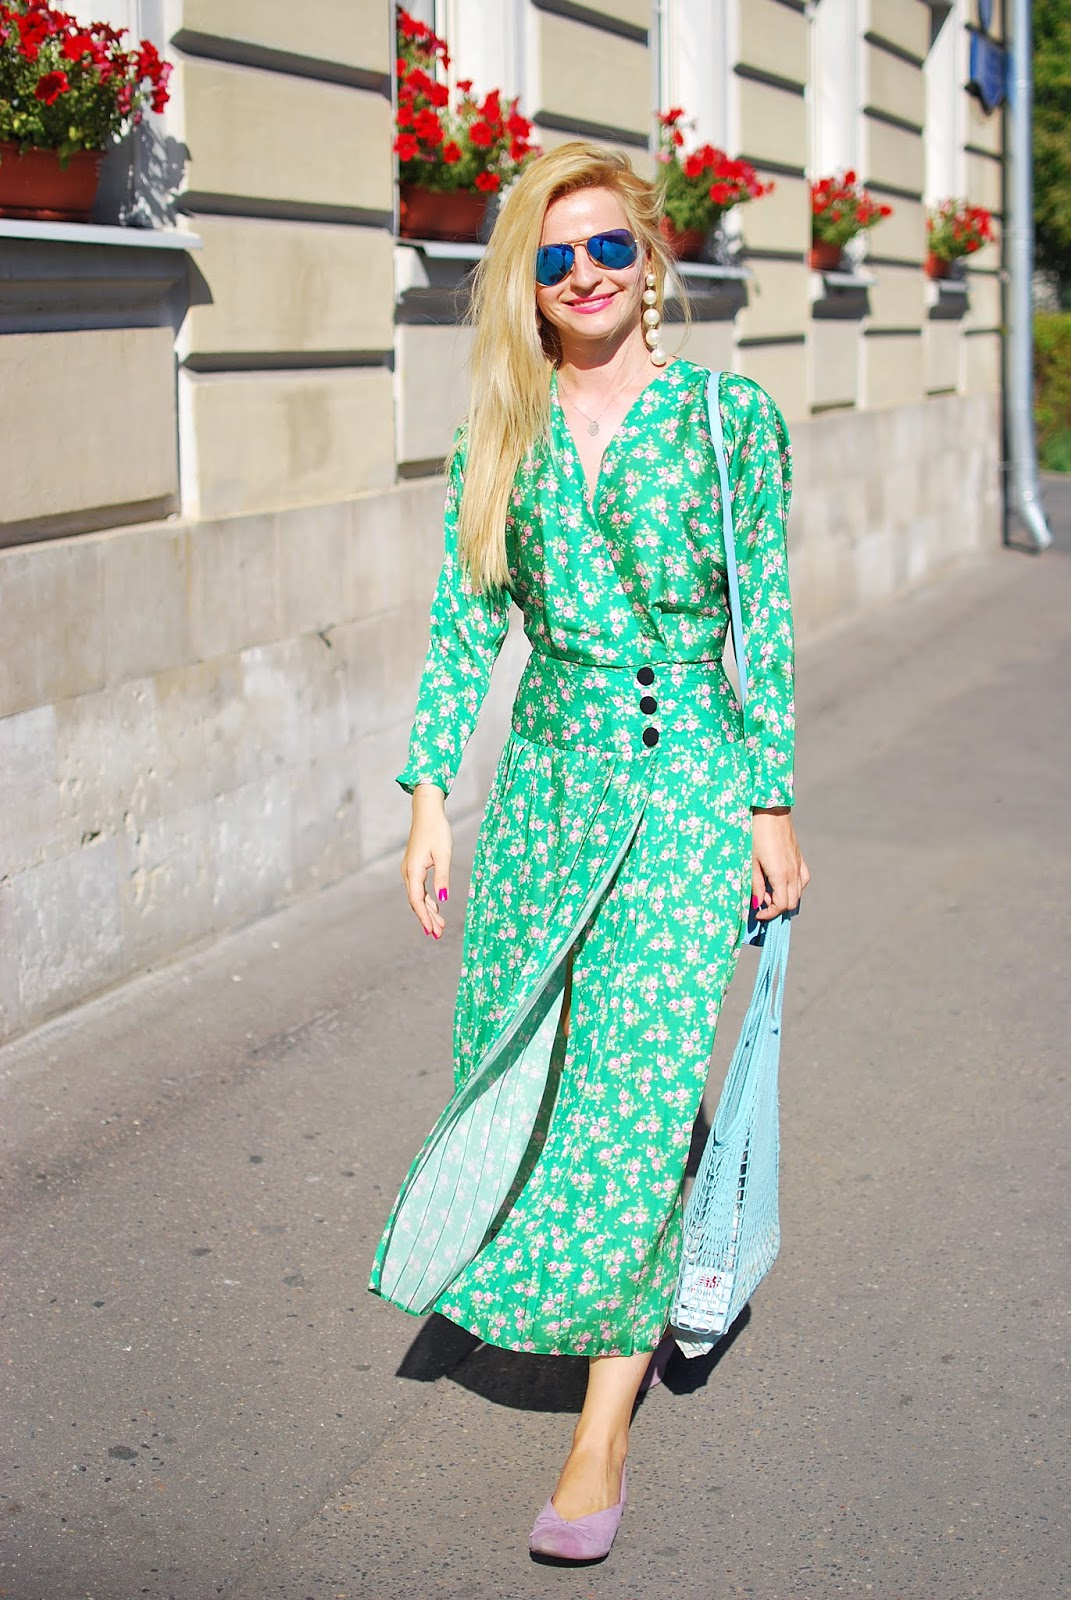 модные образ лета, green printed pleated dress outfit